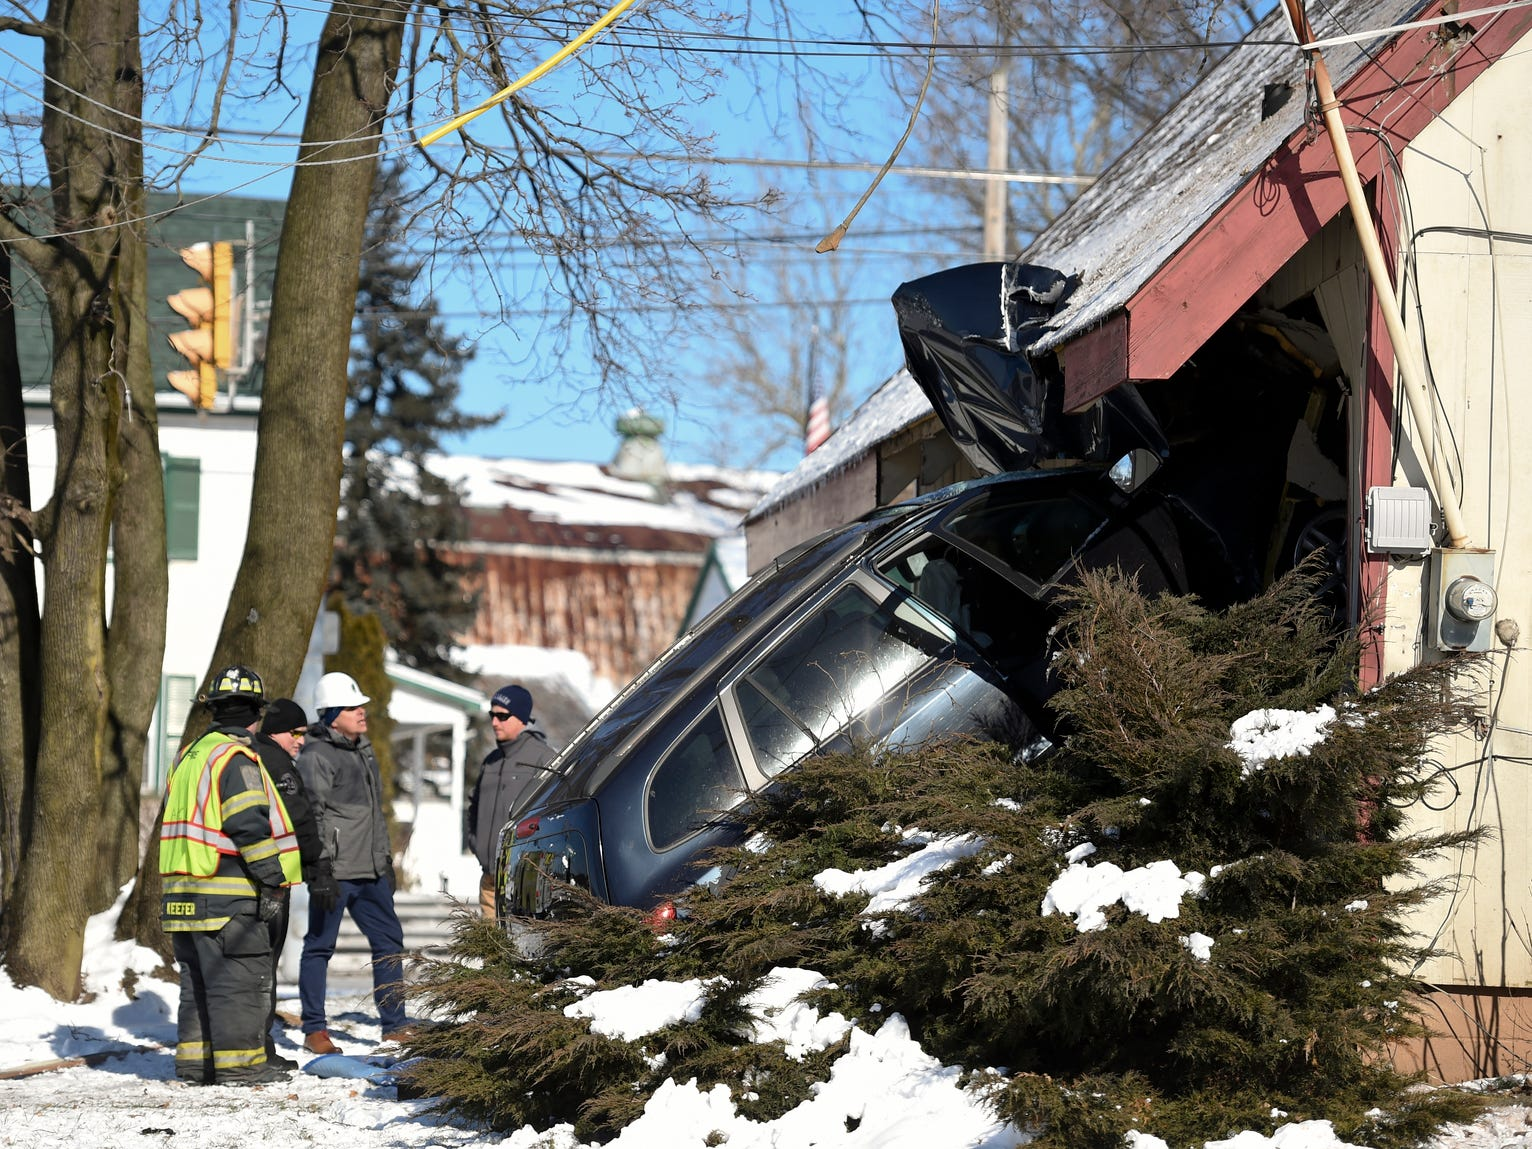 First responders are at the scene of a car that crashed into a building at 422 and Monocacy Creek Road Thursday, Jan. 31, 2019, in Amity Township, Pa.